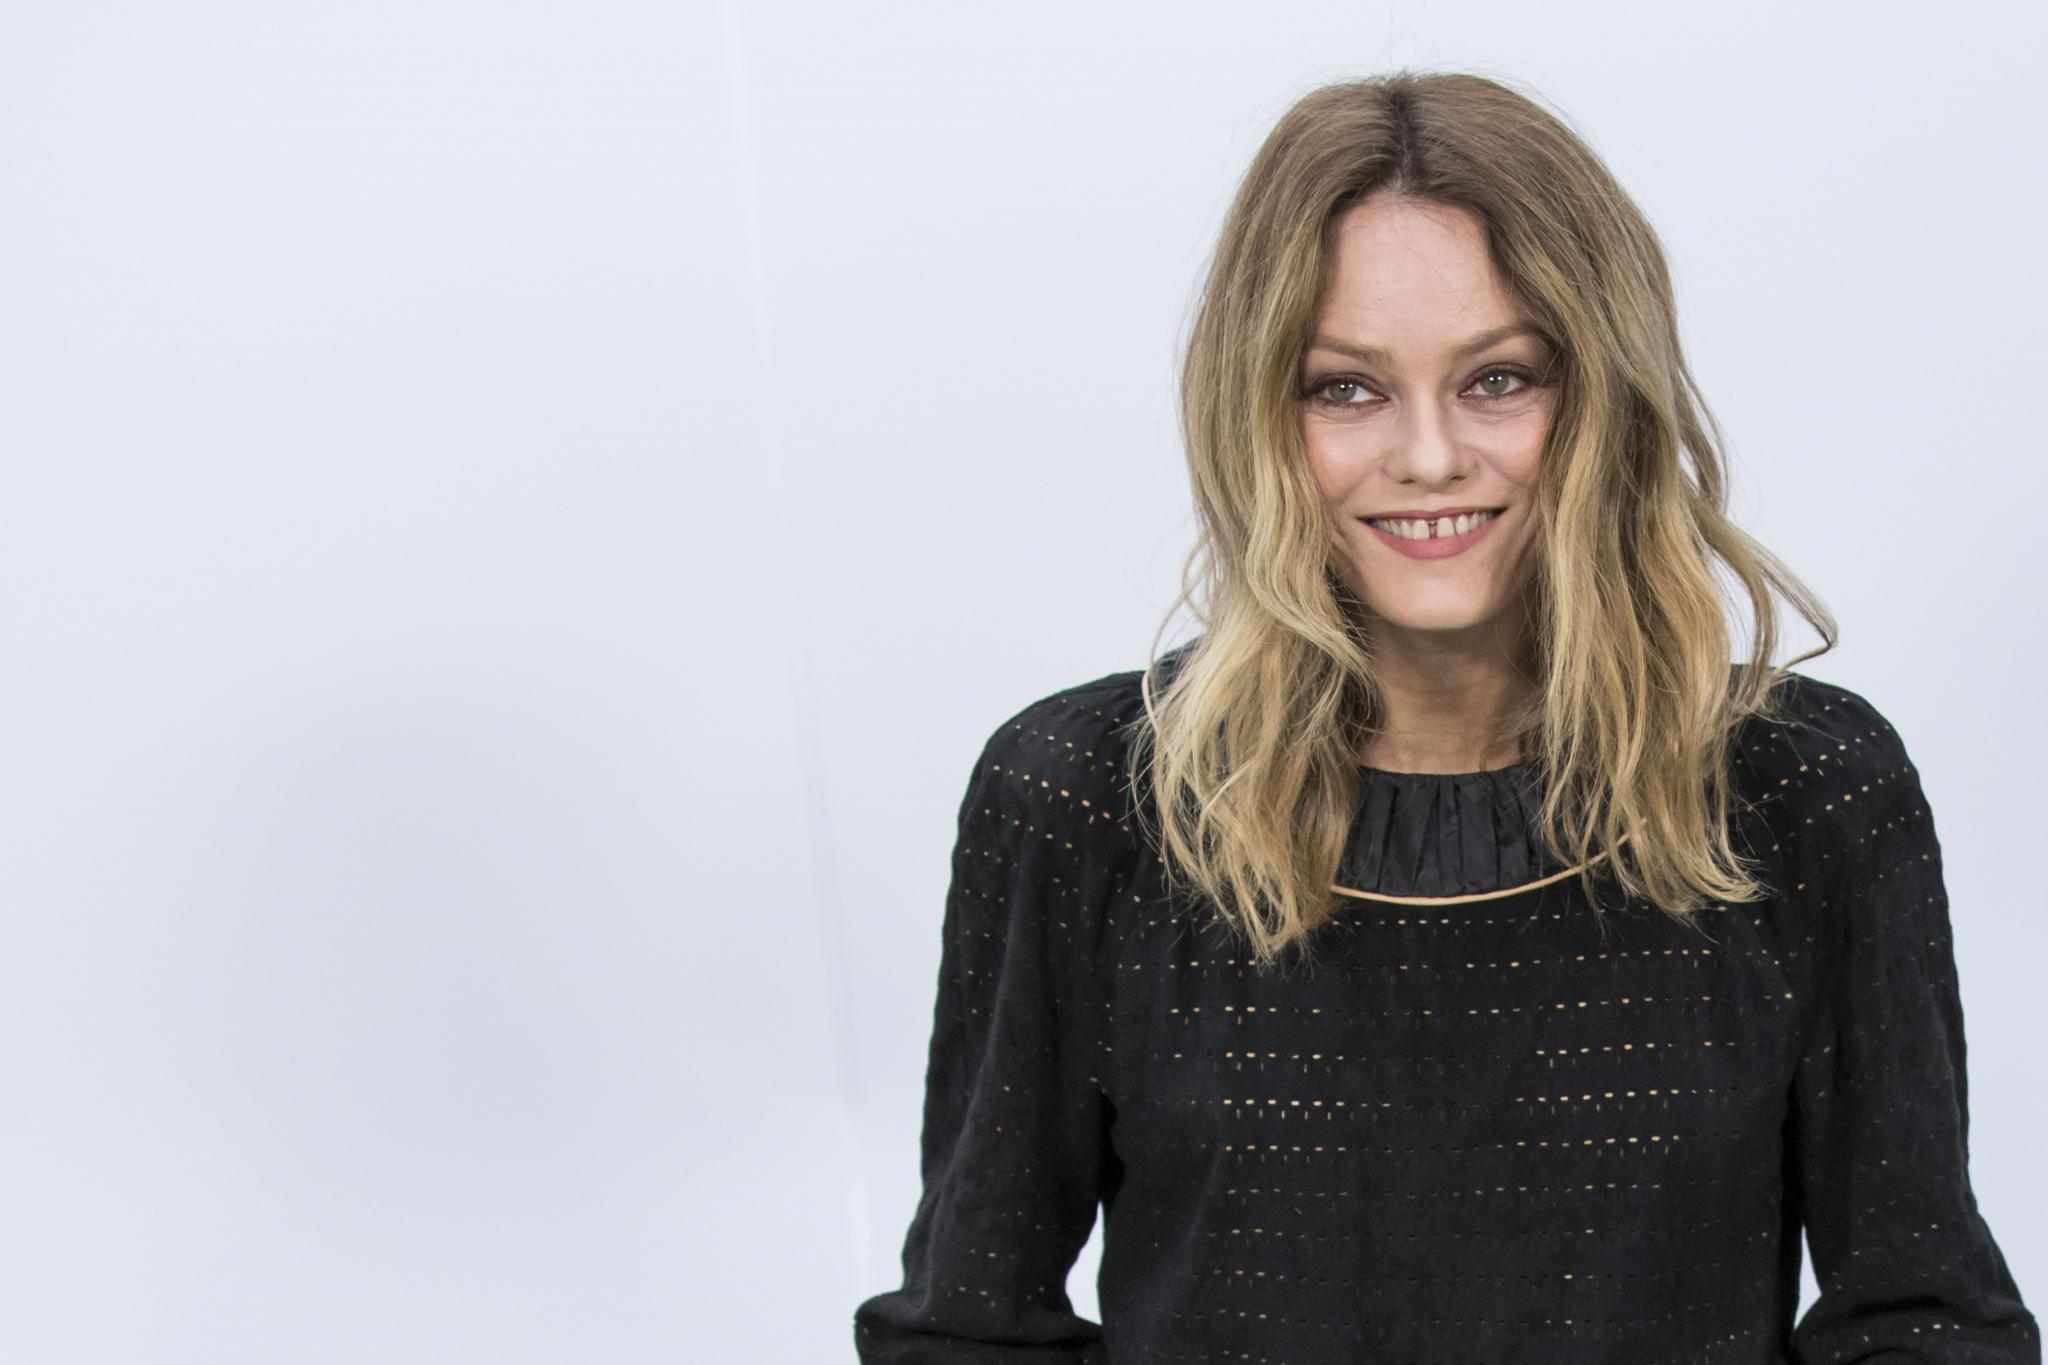 vanessa paradis sera la pr sidente des prochains c sar. Black Bedroom Furniture Sets. Home Design Ideas